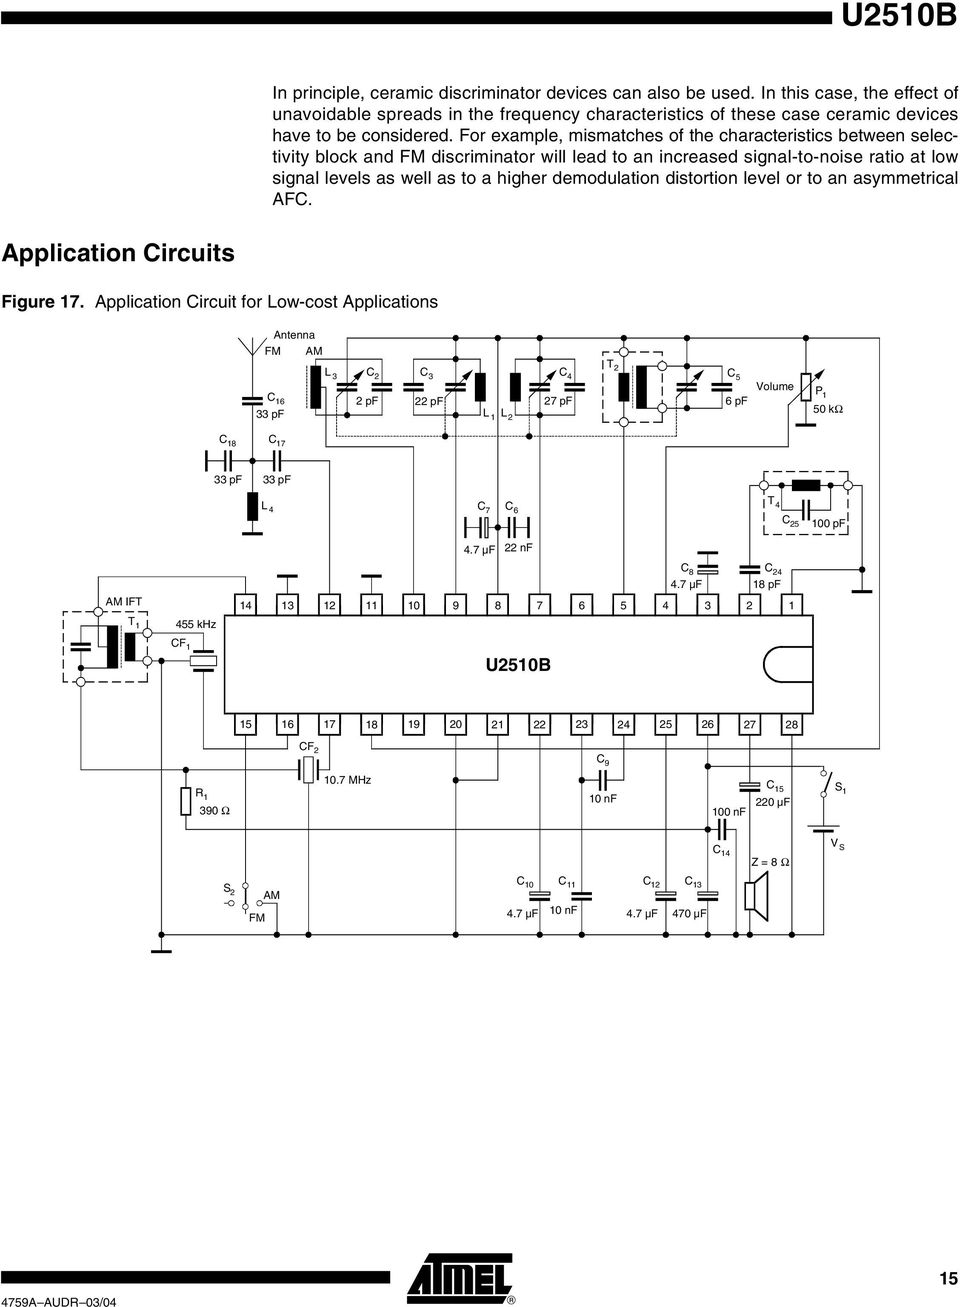 All Band Am Fm Receiver And Audio Amplifier Ic U2510b Pdf Wireless Receiving Demodulation Integrated Circuit Diagram For Example Mismatches Of The Characteristics Between Selectivity Block Discriminator Will Lead To An